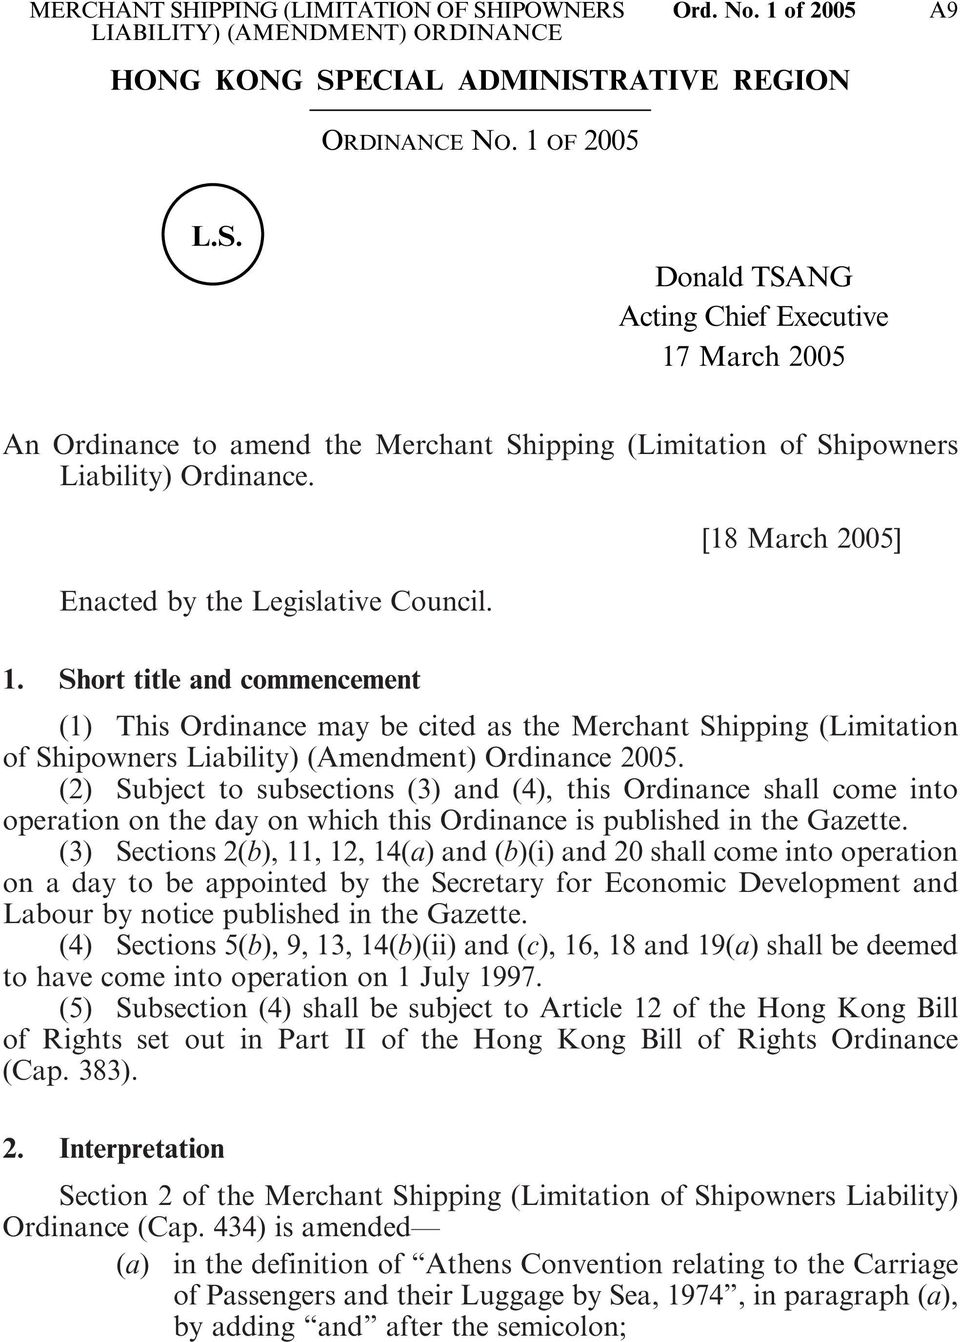 Short title and commencement (1) This Ordinance may be cited as the Merchant Shipping (Limitation of Shipowners Liability) (Amendment) Ordinance 2005.